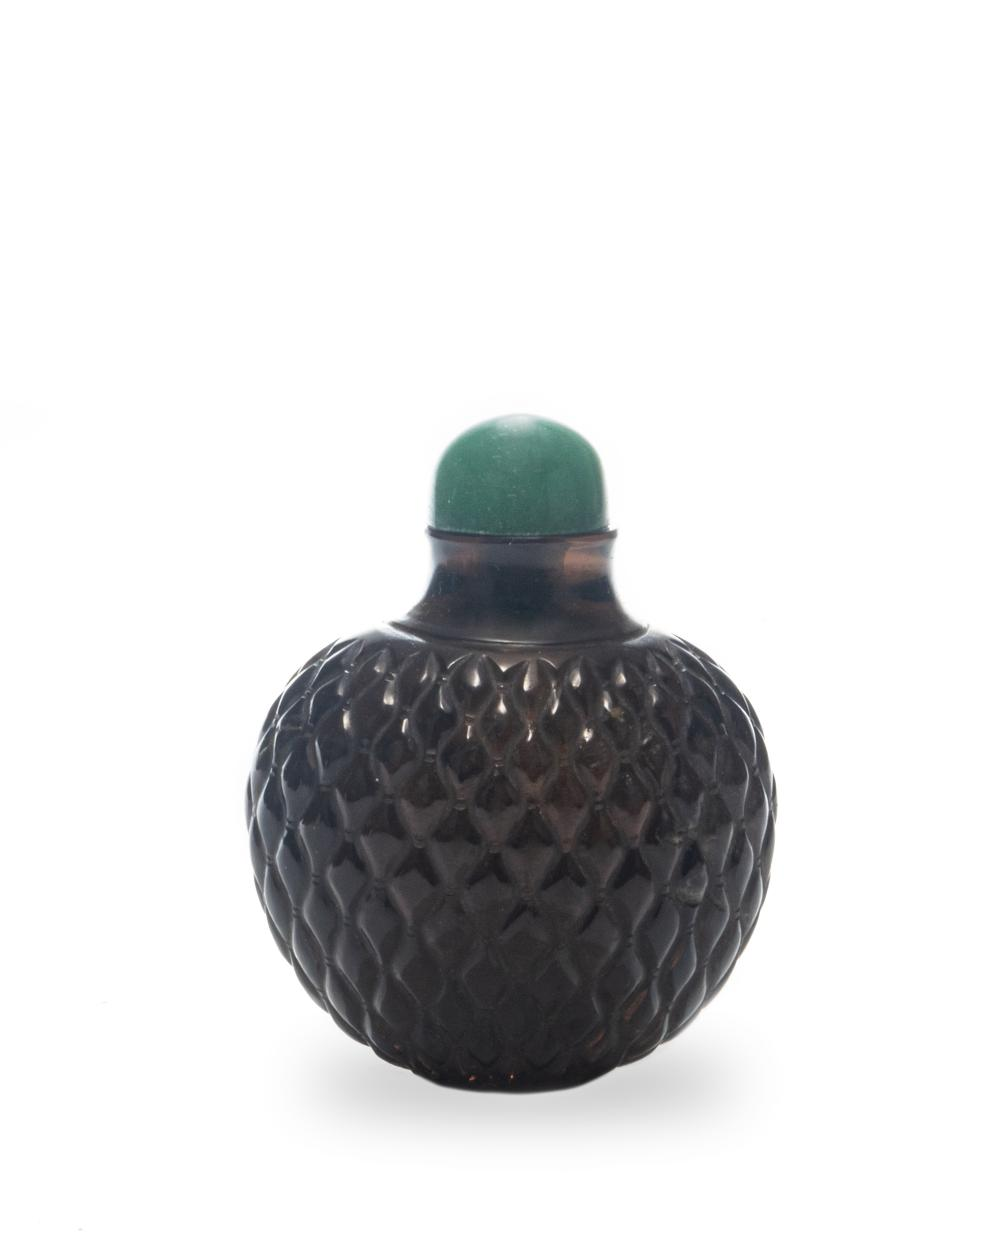 CHINESE AGATE CARVED SNUFF BOTTLE, 18TH CENTURY